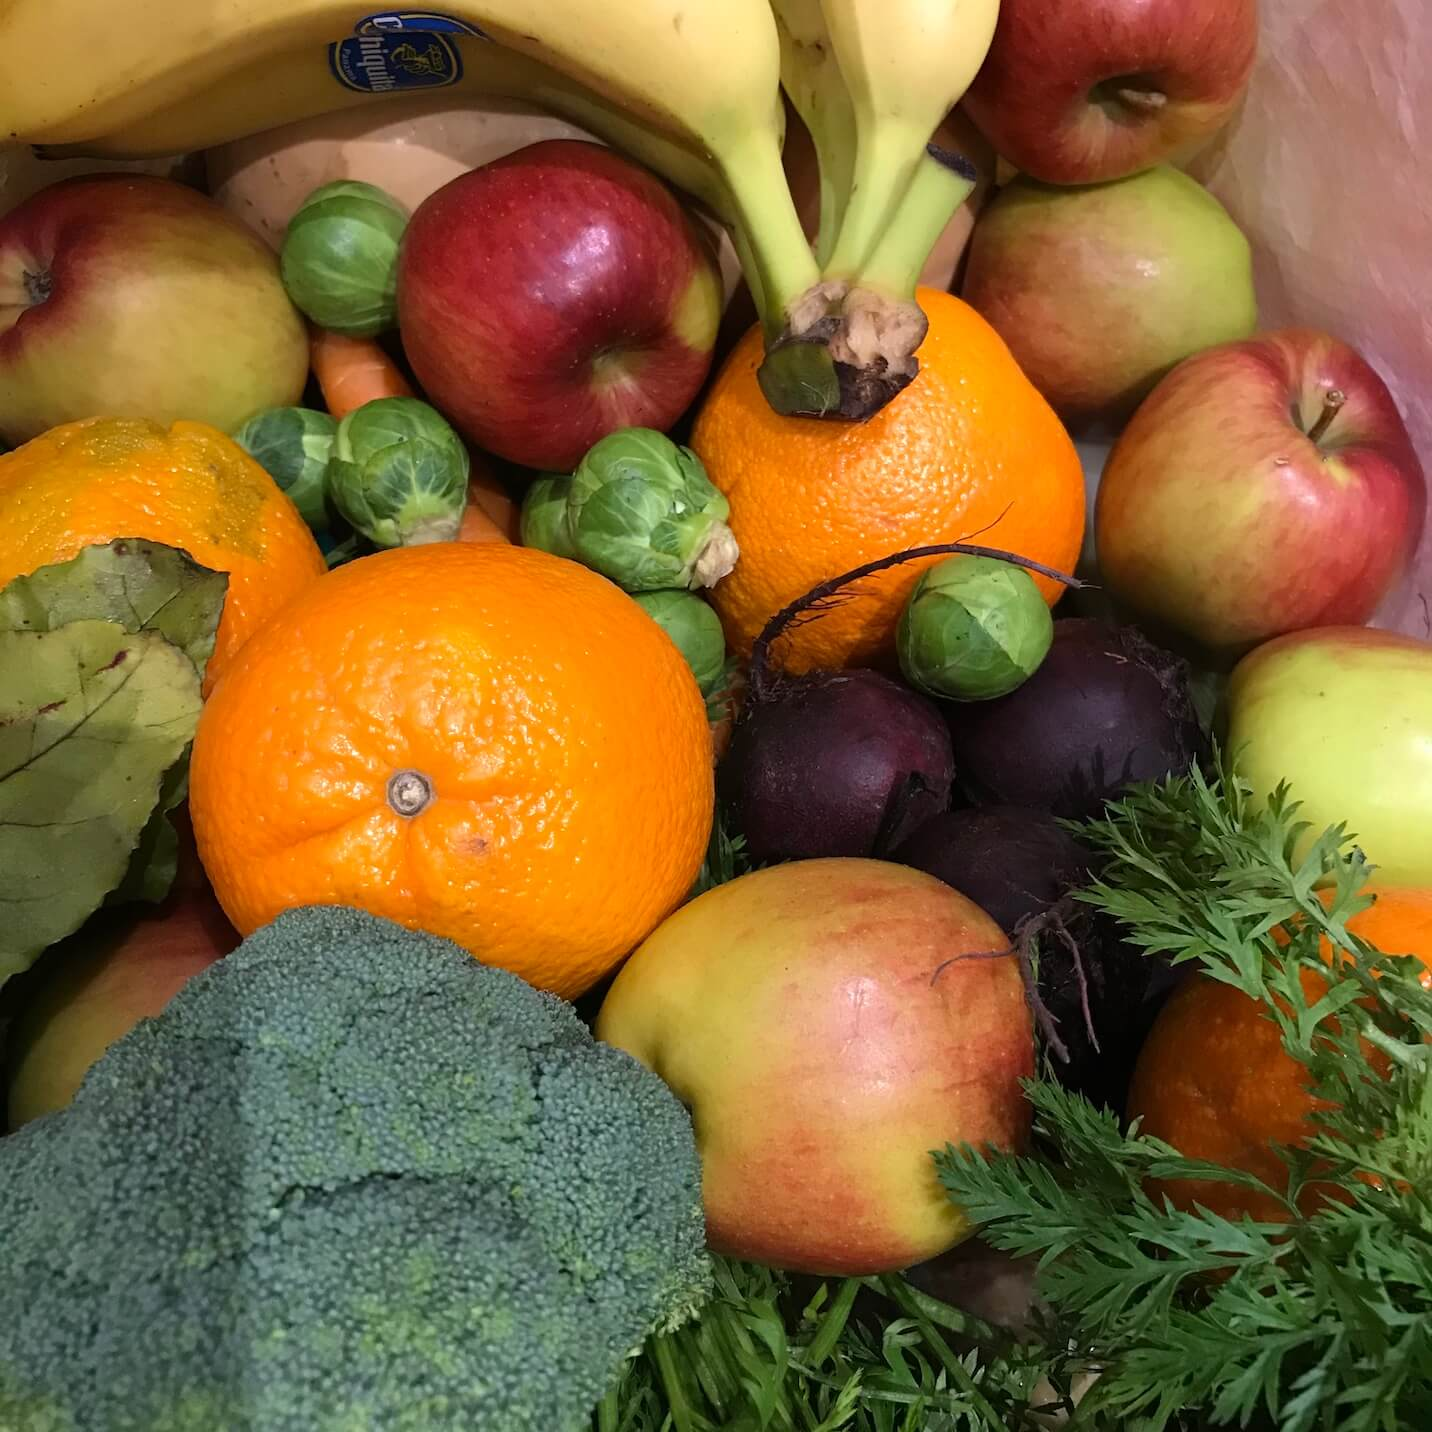 Loose fruit and veg